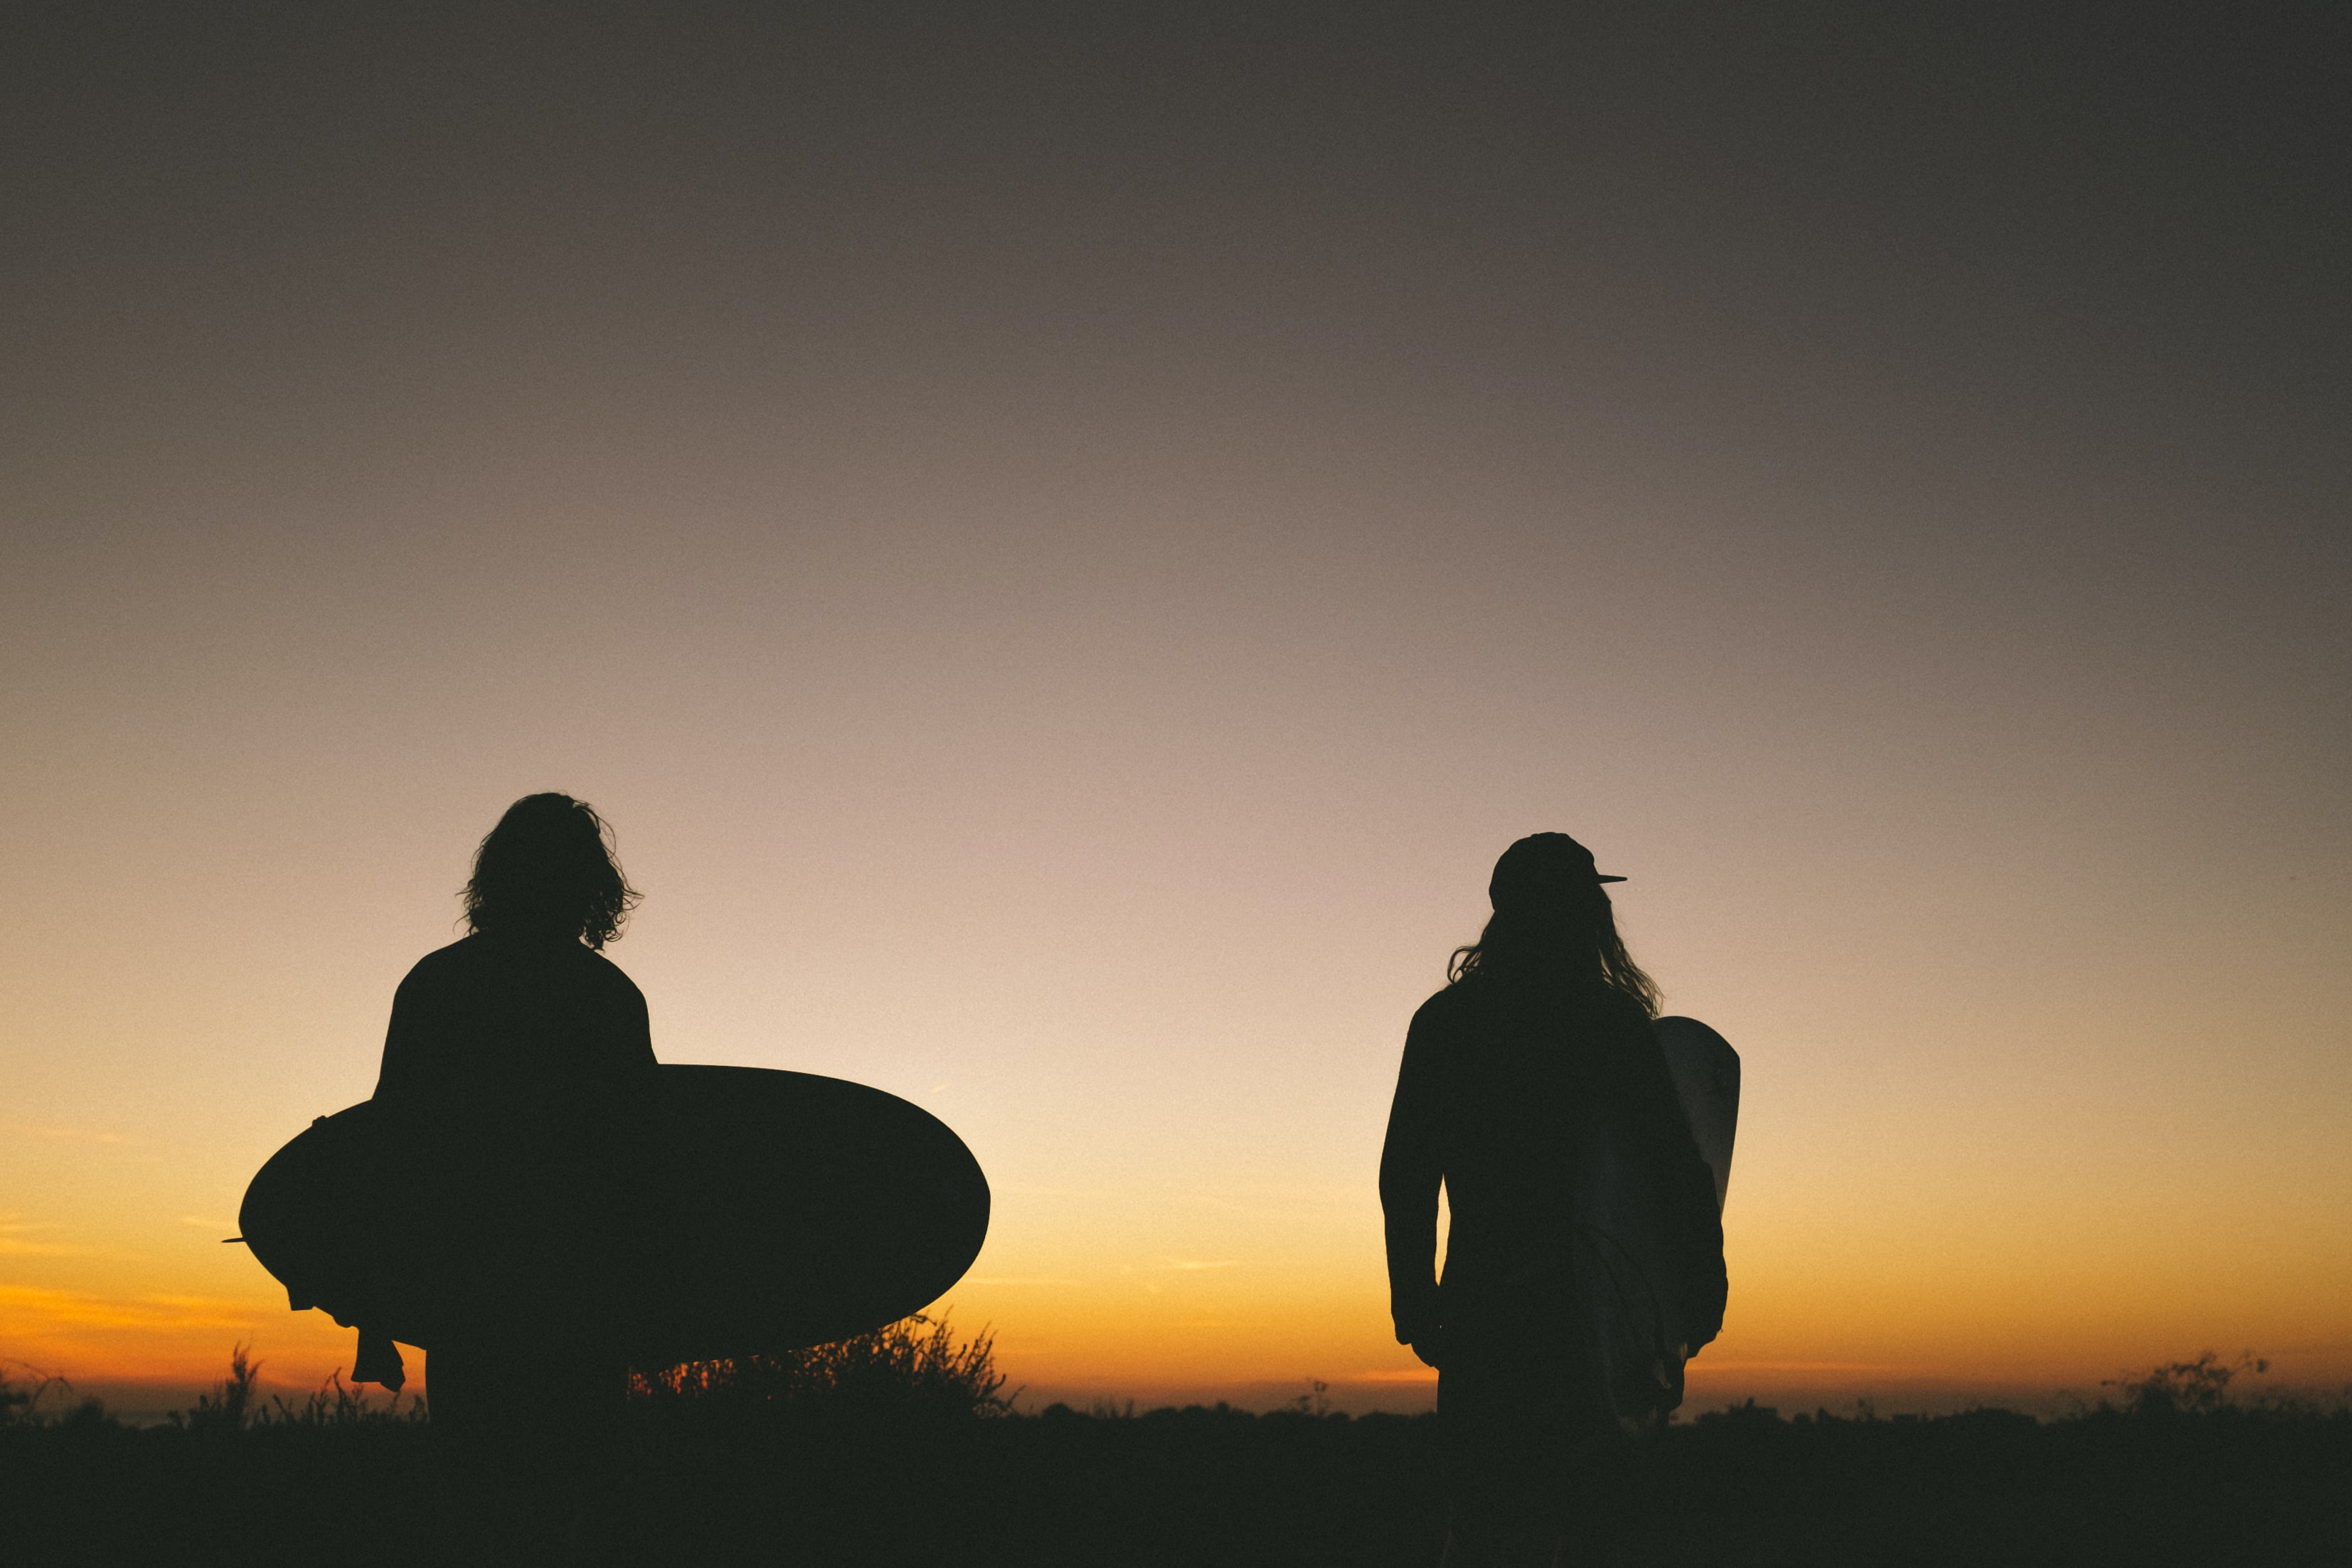 two person walking on road while holding surfboard during golden hour